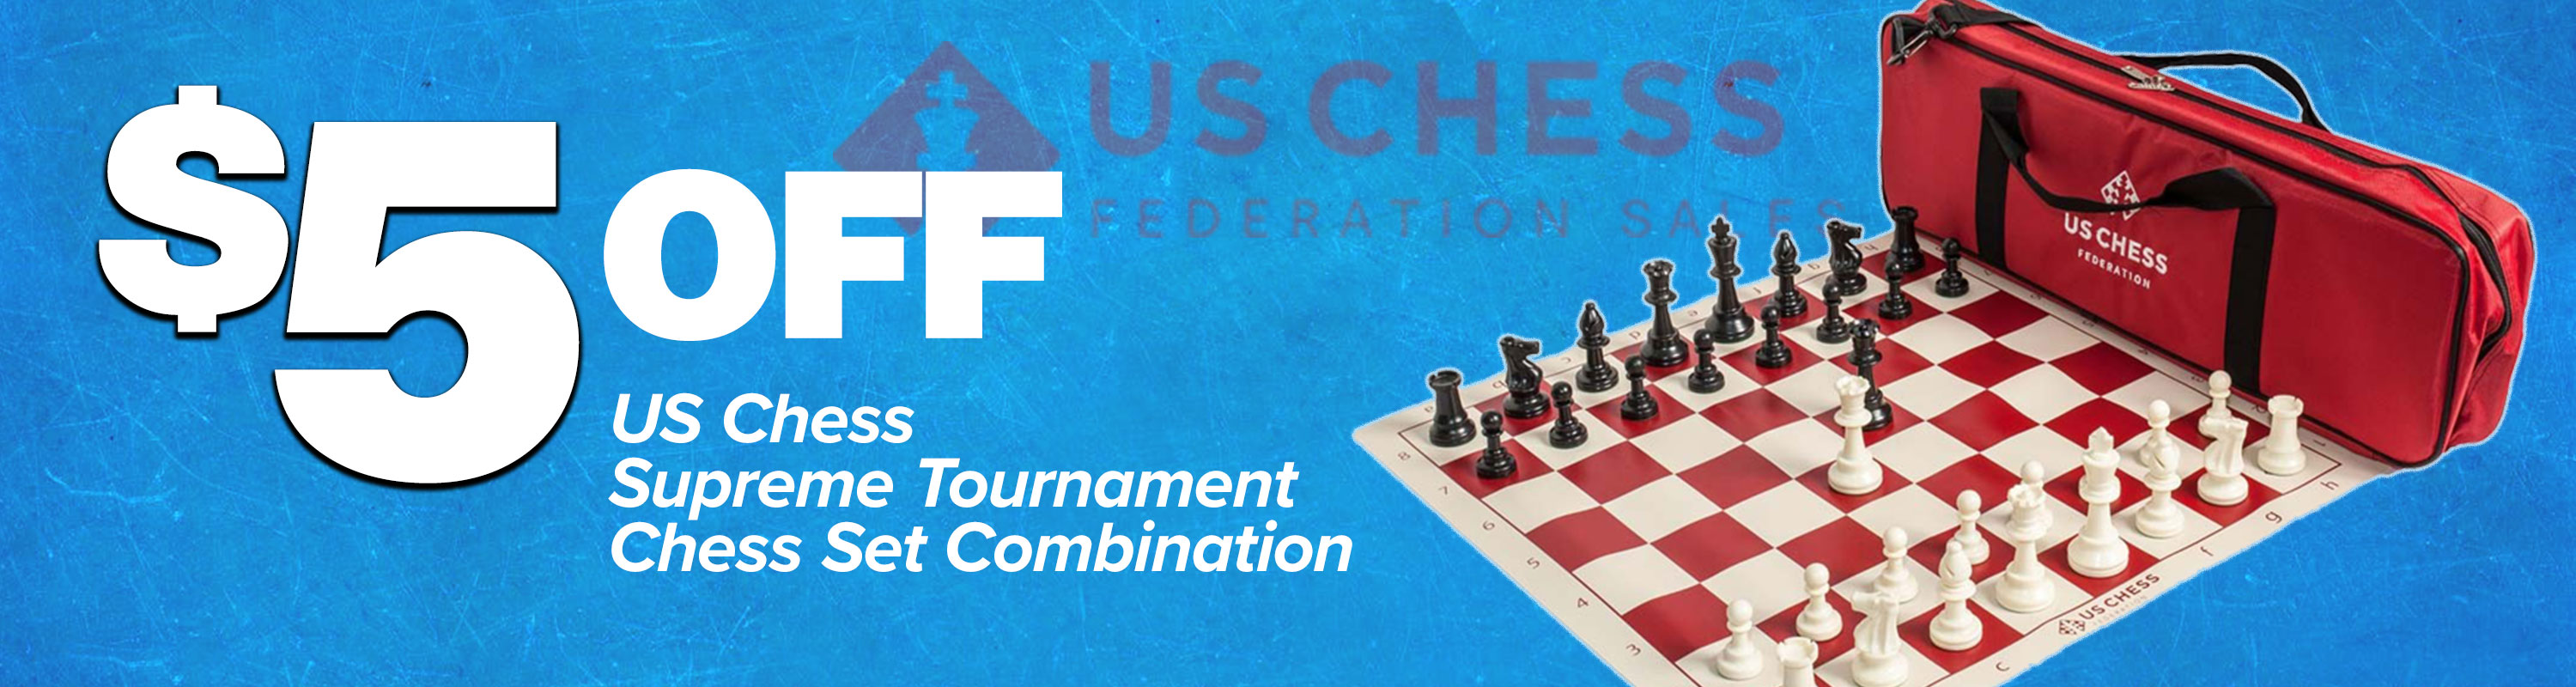 Save $5 on Supreme Tournament Chess Combos